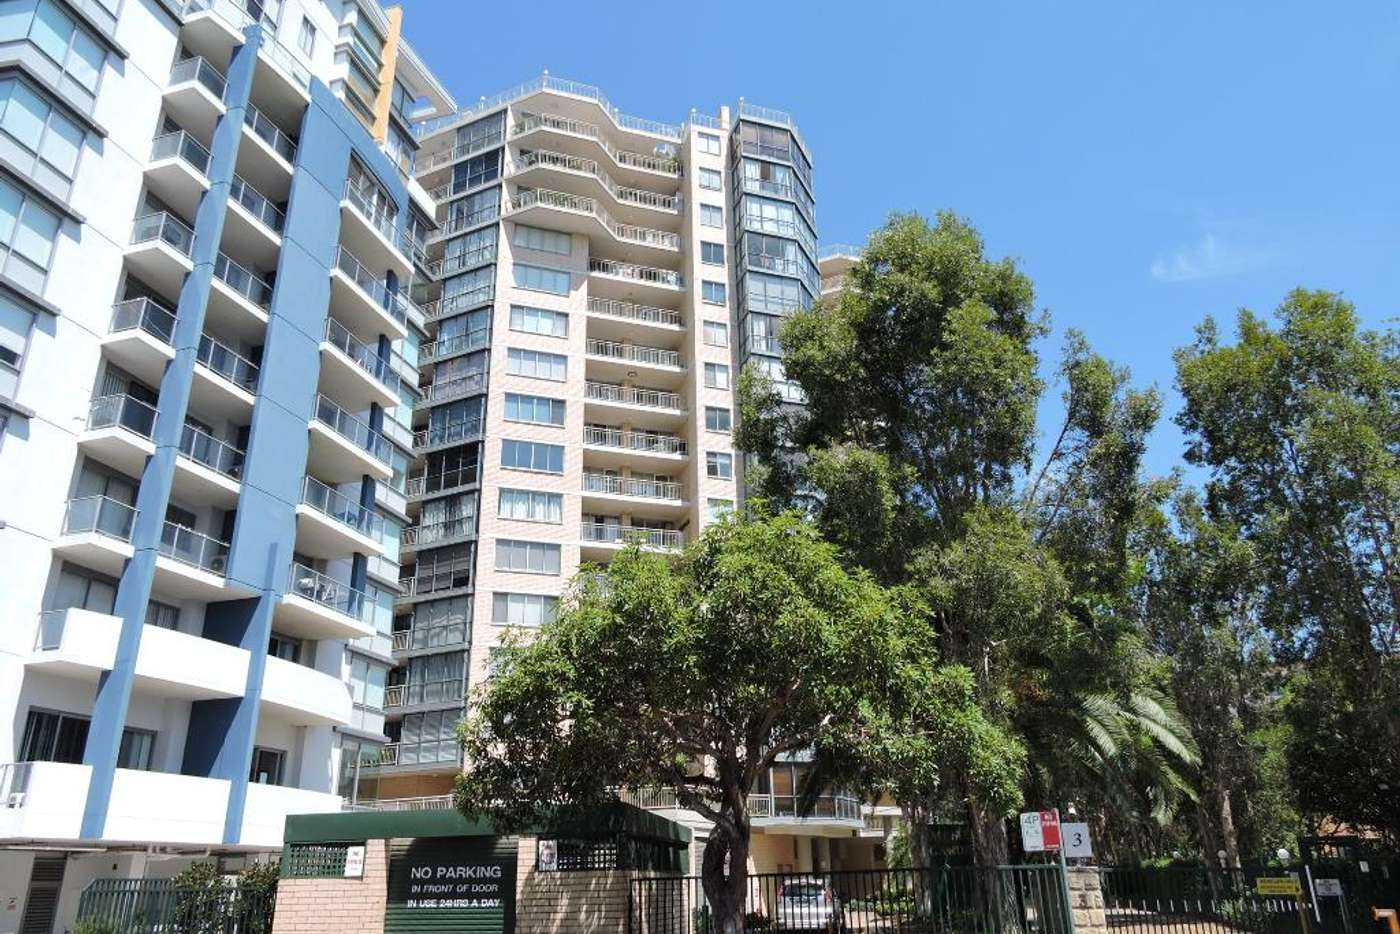 Main view of Homely apartment listing, 129/3 Sorrell Street, Parramatta NSW 2150